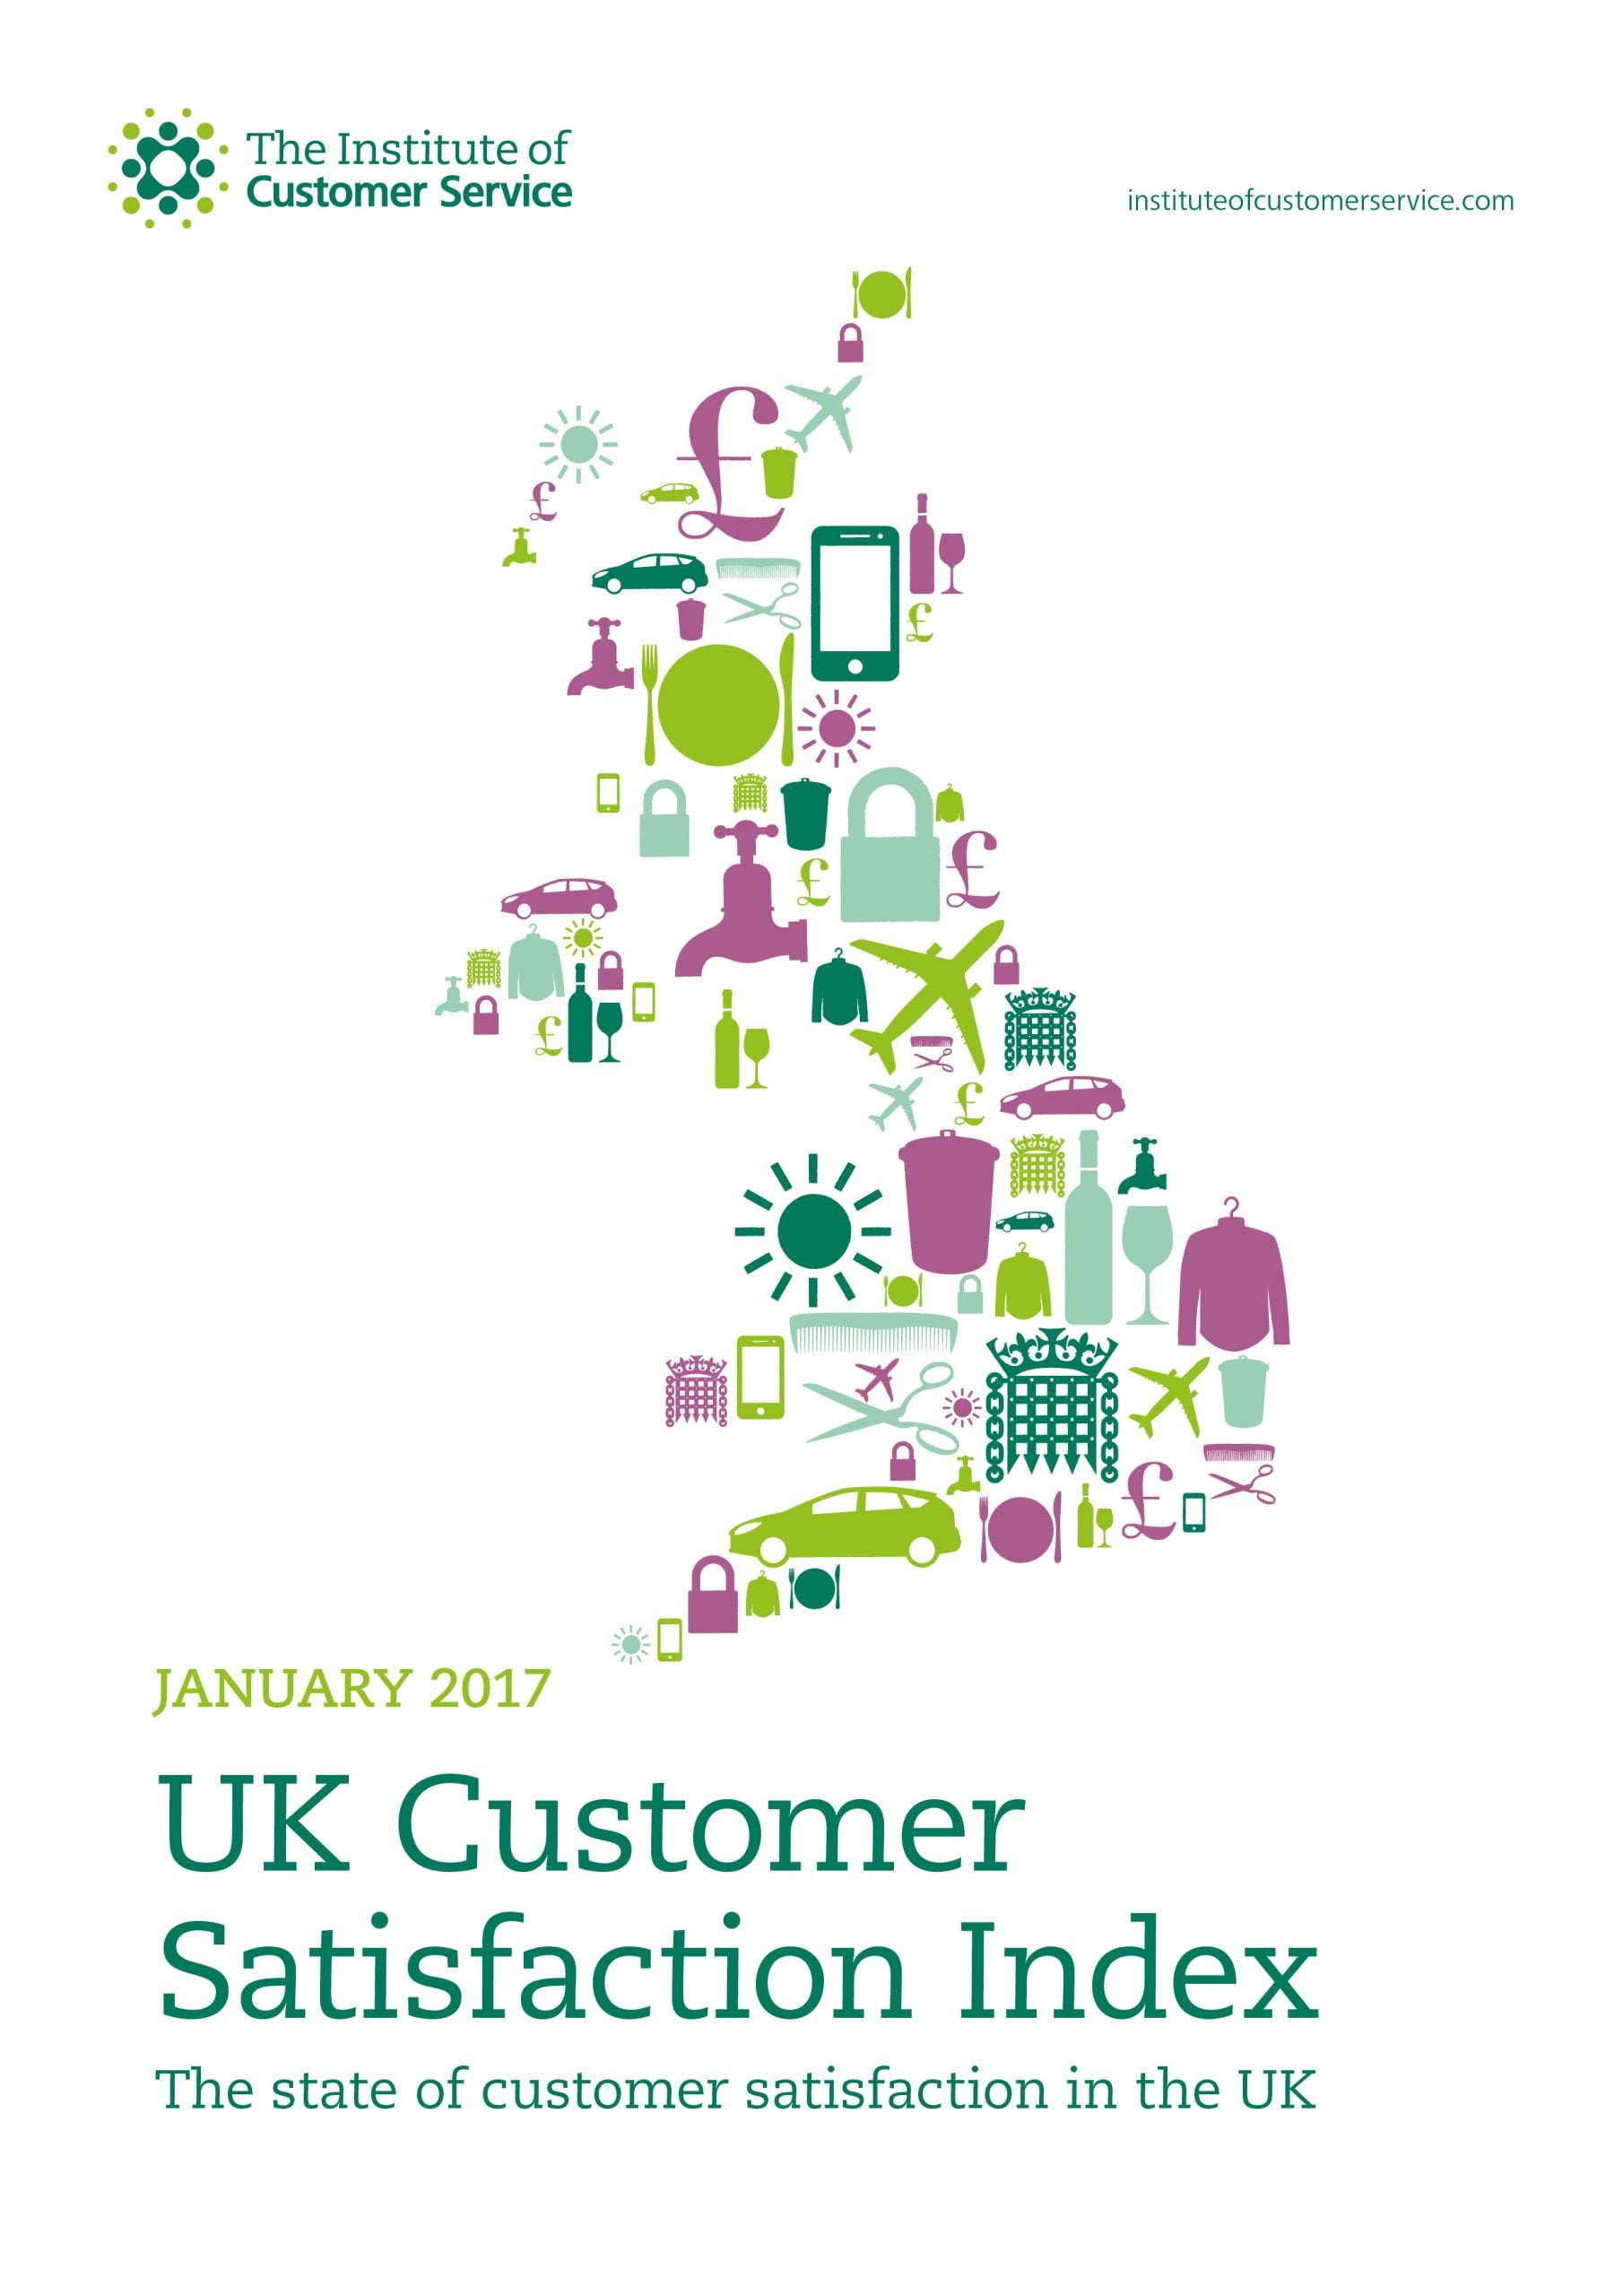 UKCSI: The State Of Customer Satisfaction In The UK – January 2017